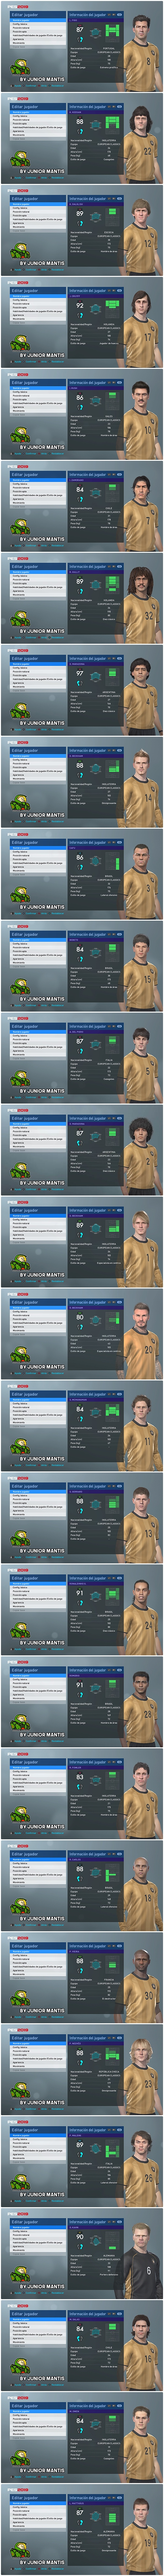 MyClub Legends Offline V2 PES 2019 PS4 - by Junior Mantis